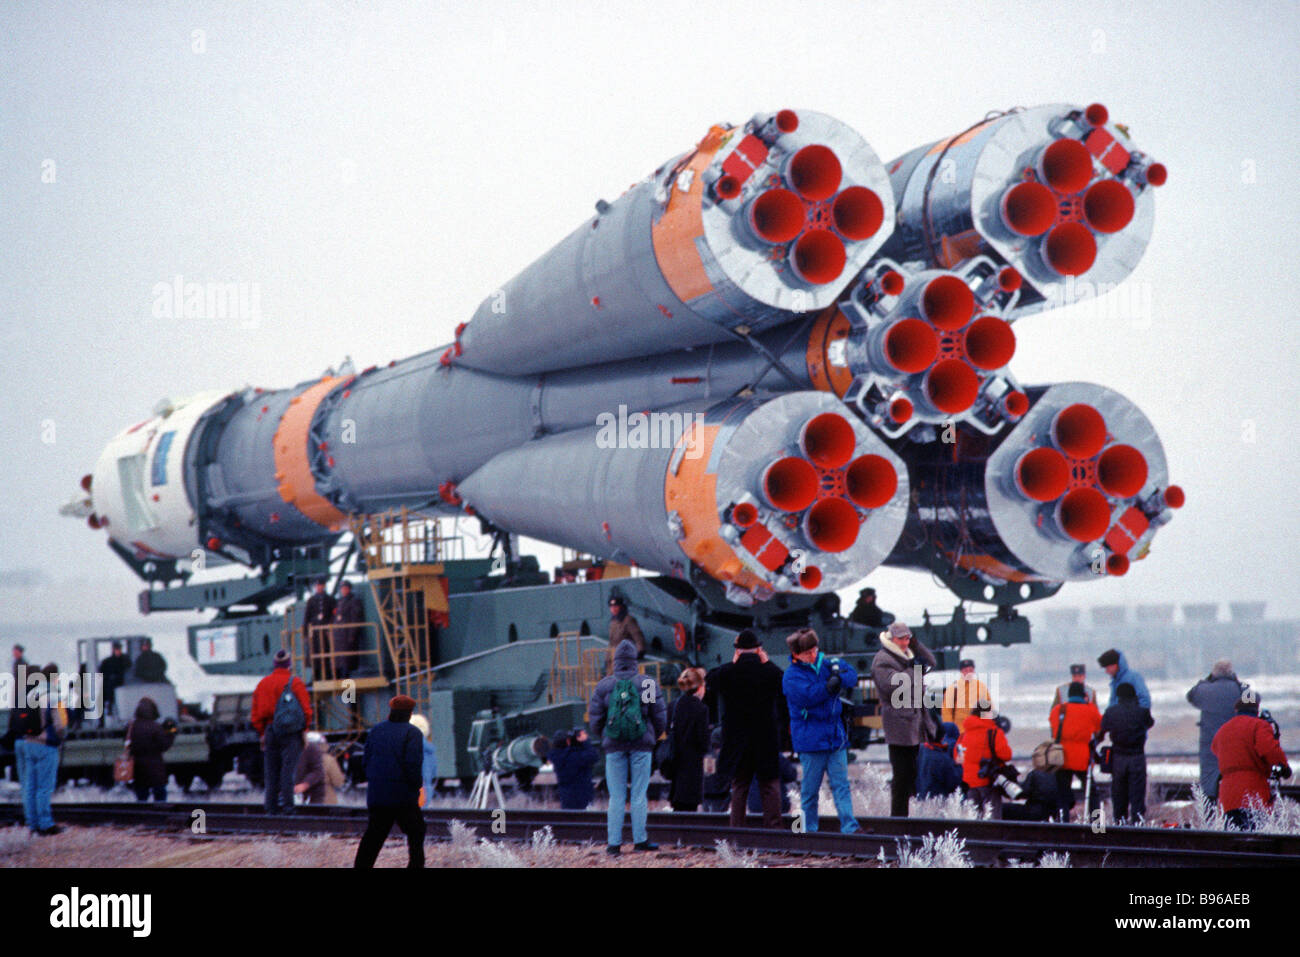 Soyuz launch vehicle moving toward launch pad - Stock Image